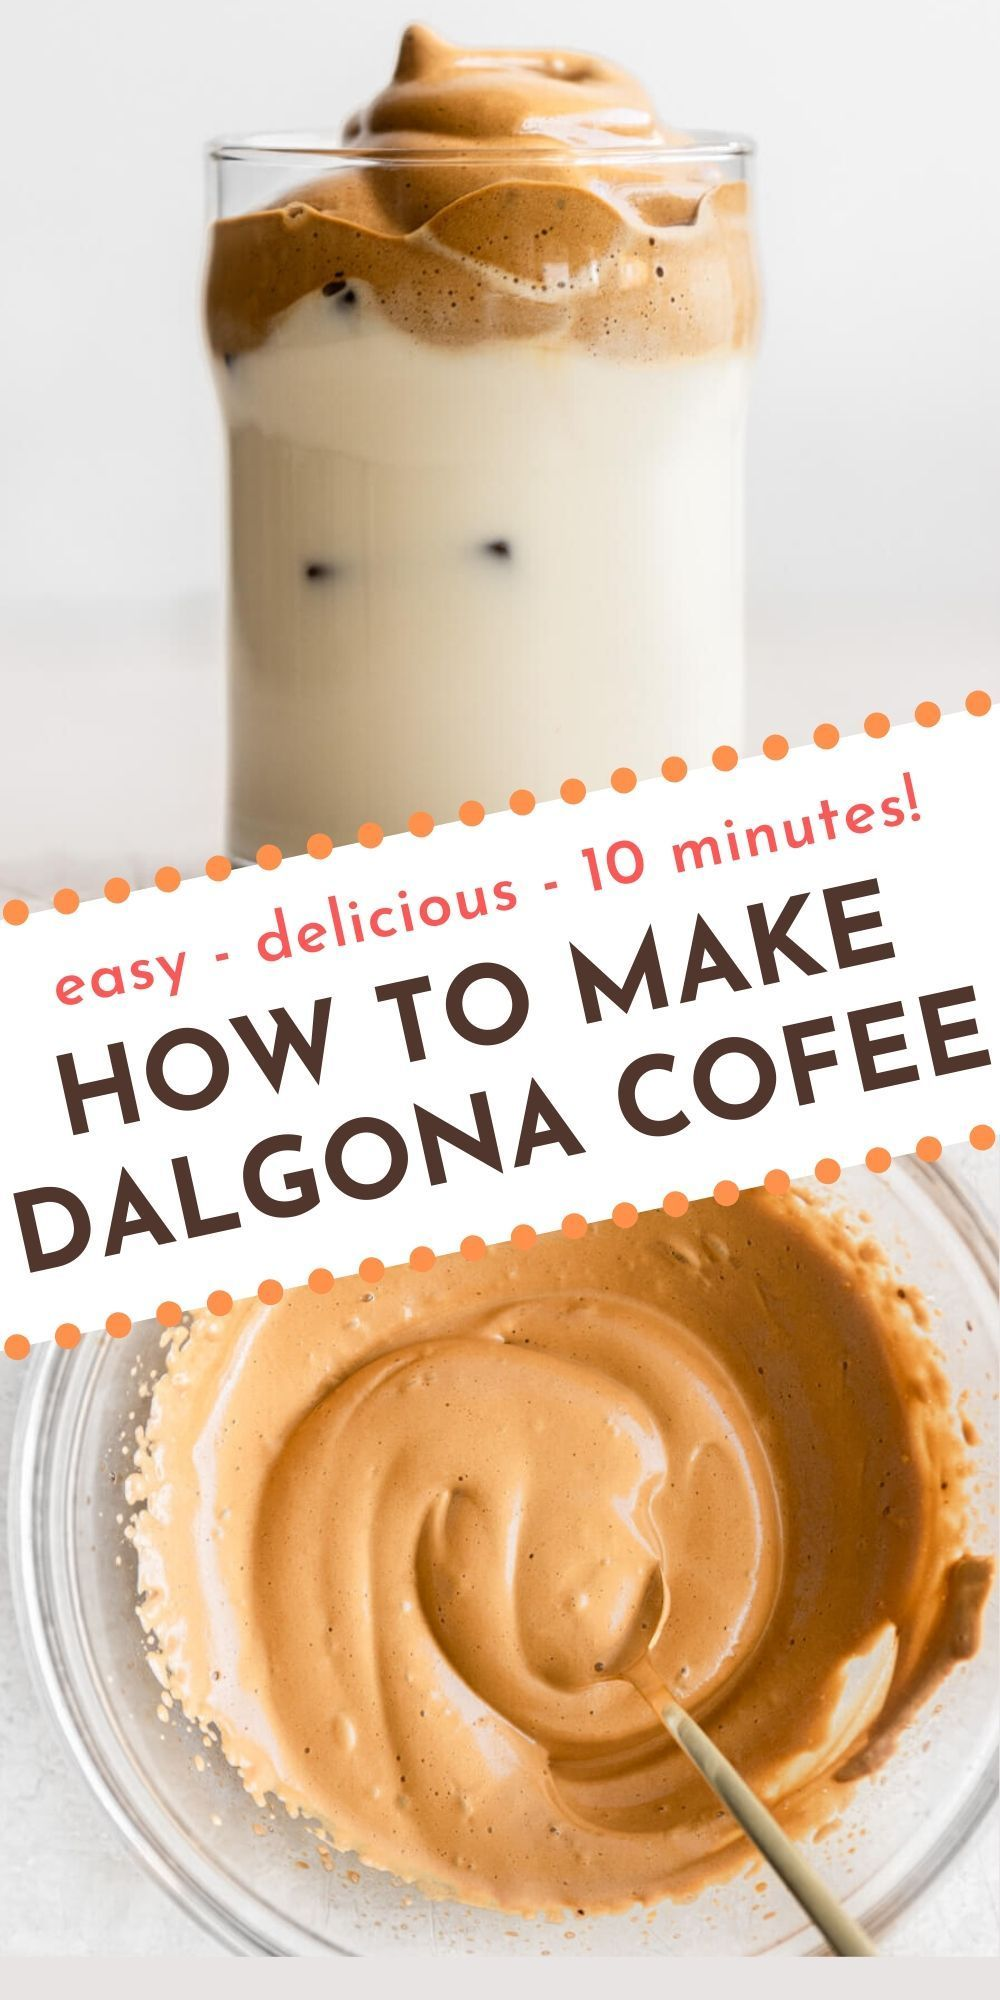 How to Make Dalgona Coffee (Whipped Coffee) Real